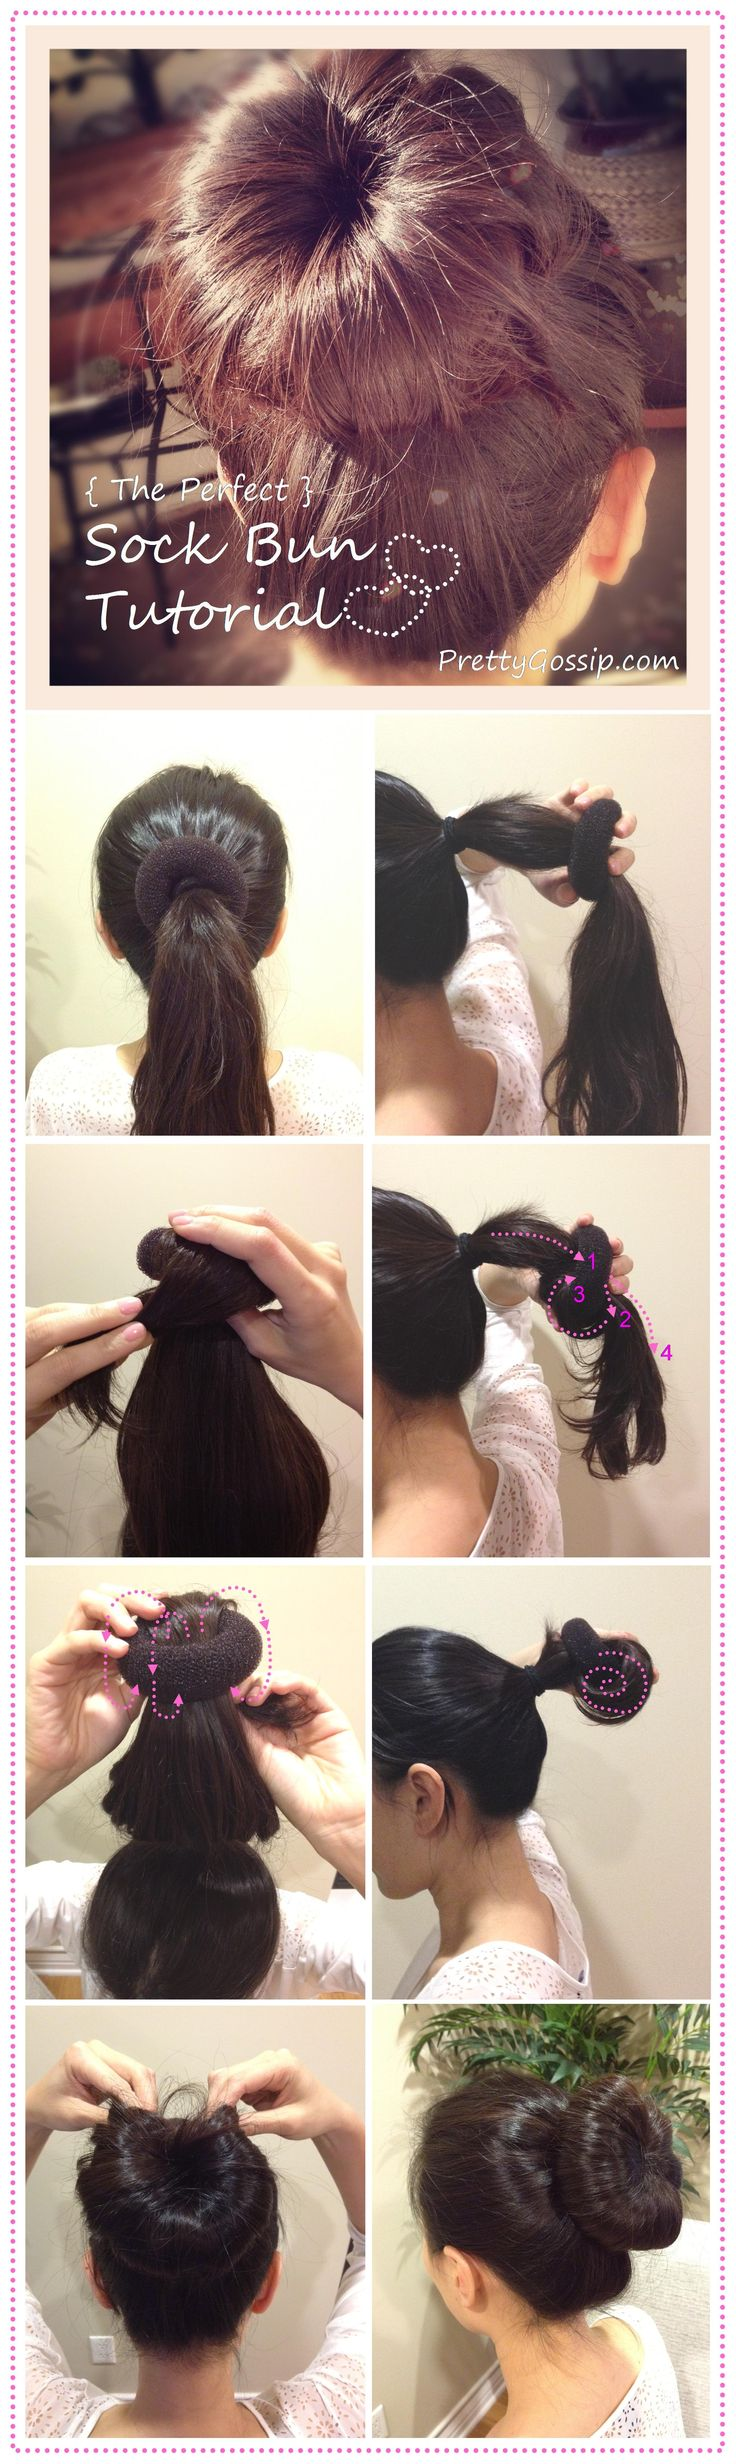 a sock bun tutorial that makes sense! Thank you Pretty Gossip!